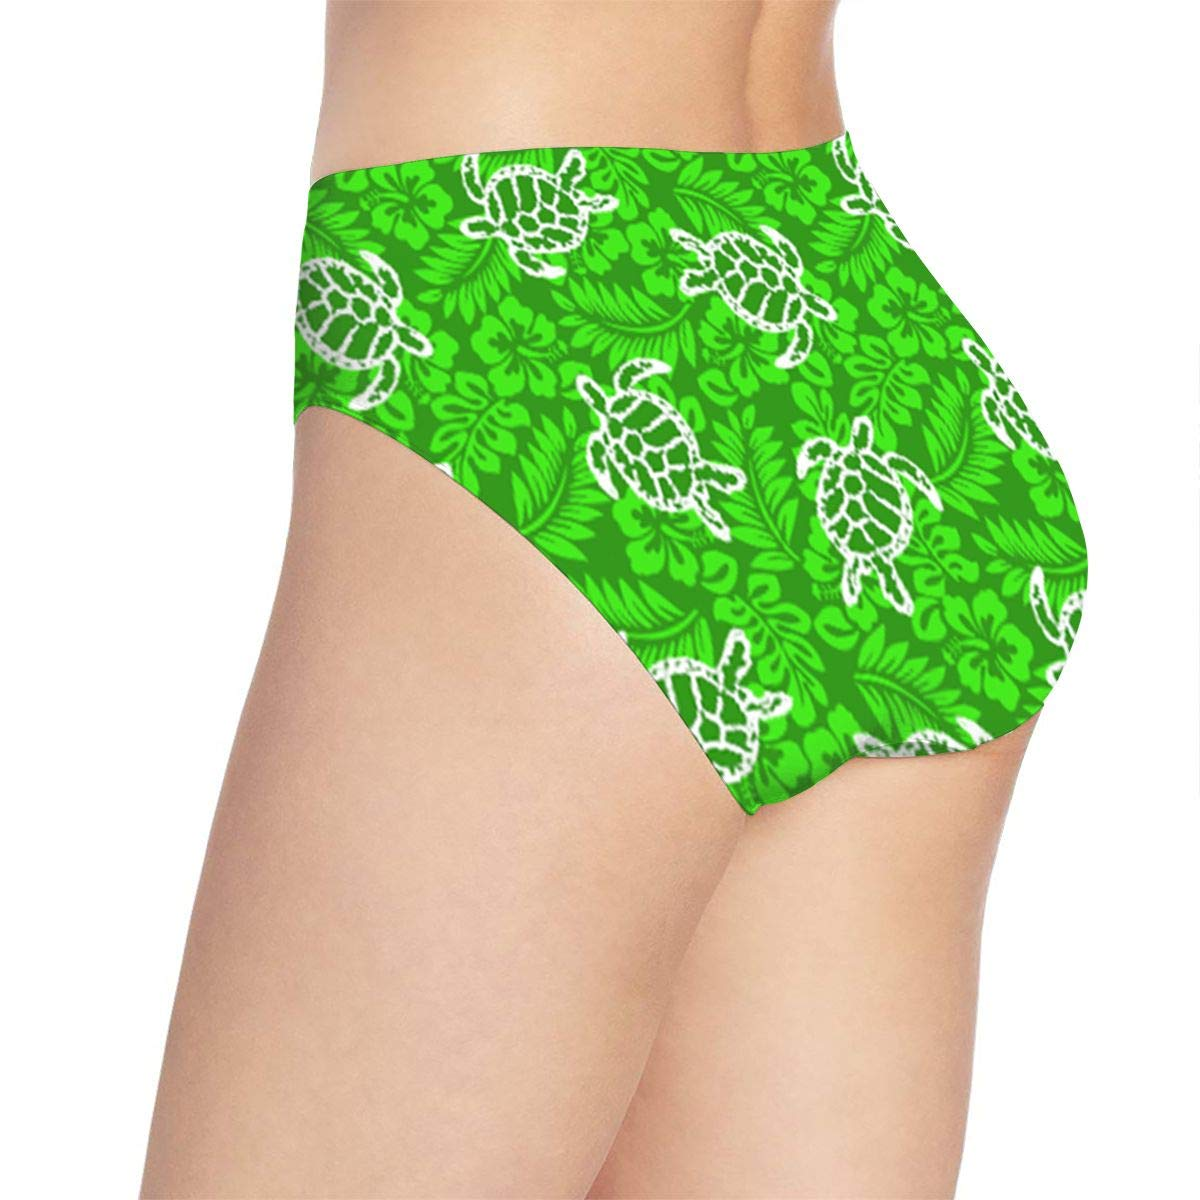 Women s Hipster Panties Hot Sea Turtle Hawaiian Summer Surf Seamless  Underwear Stretch Soft Briefs Lingerie Female at Amazon Women s Clothing  store  5173c3811